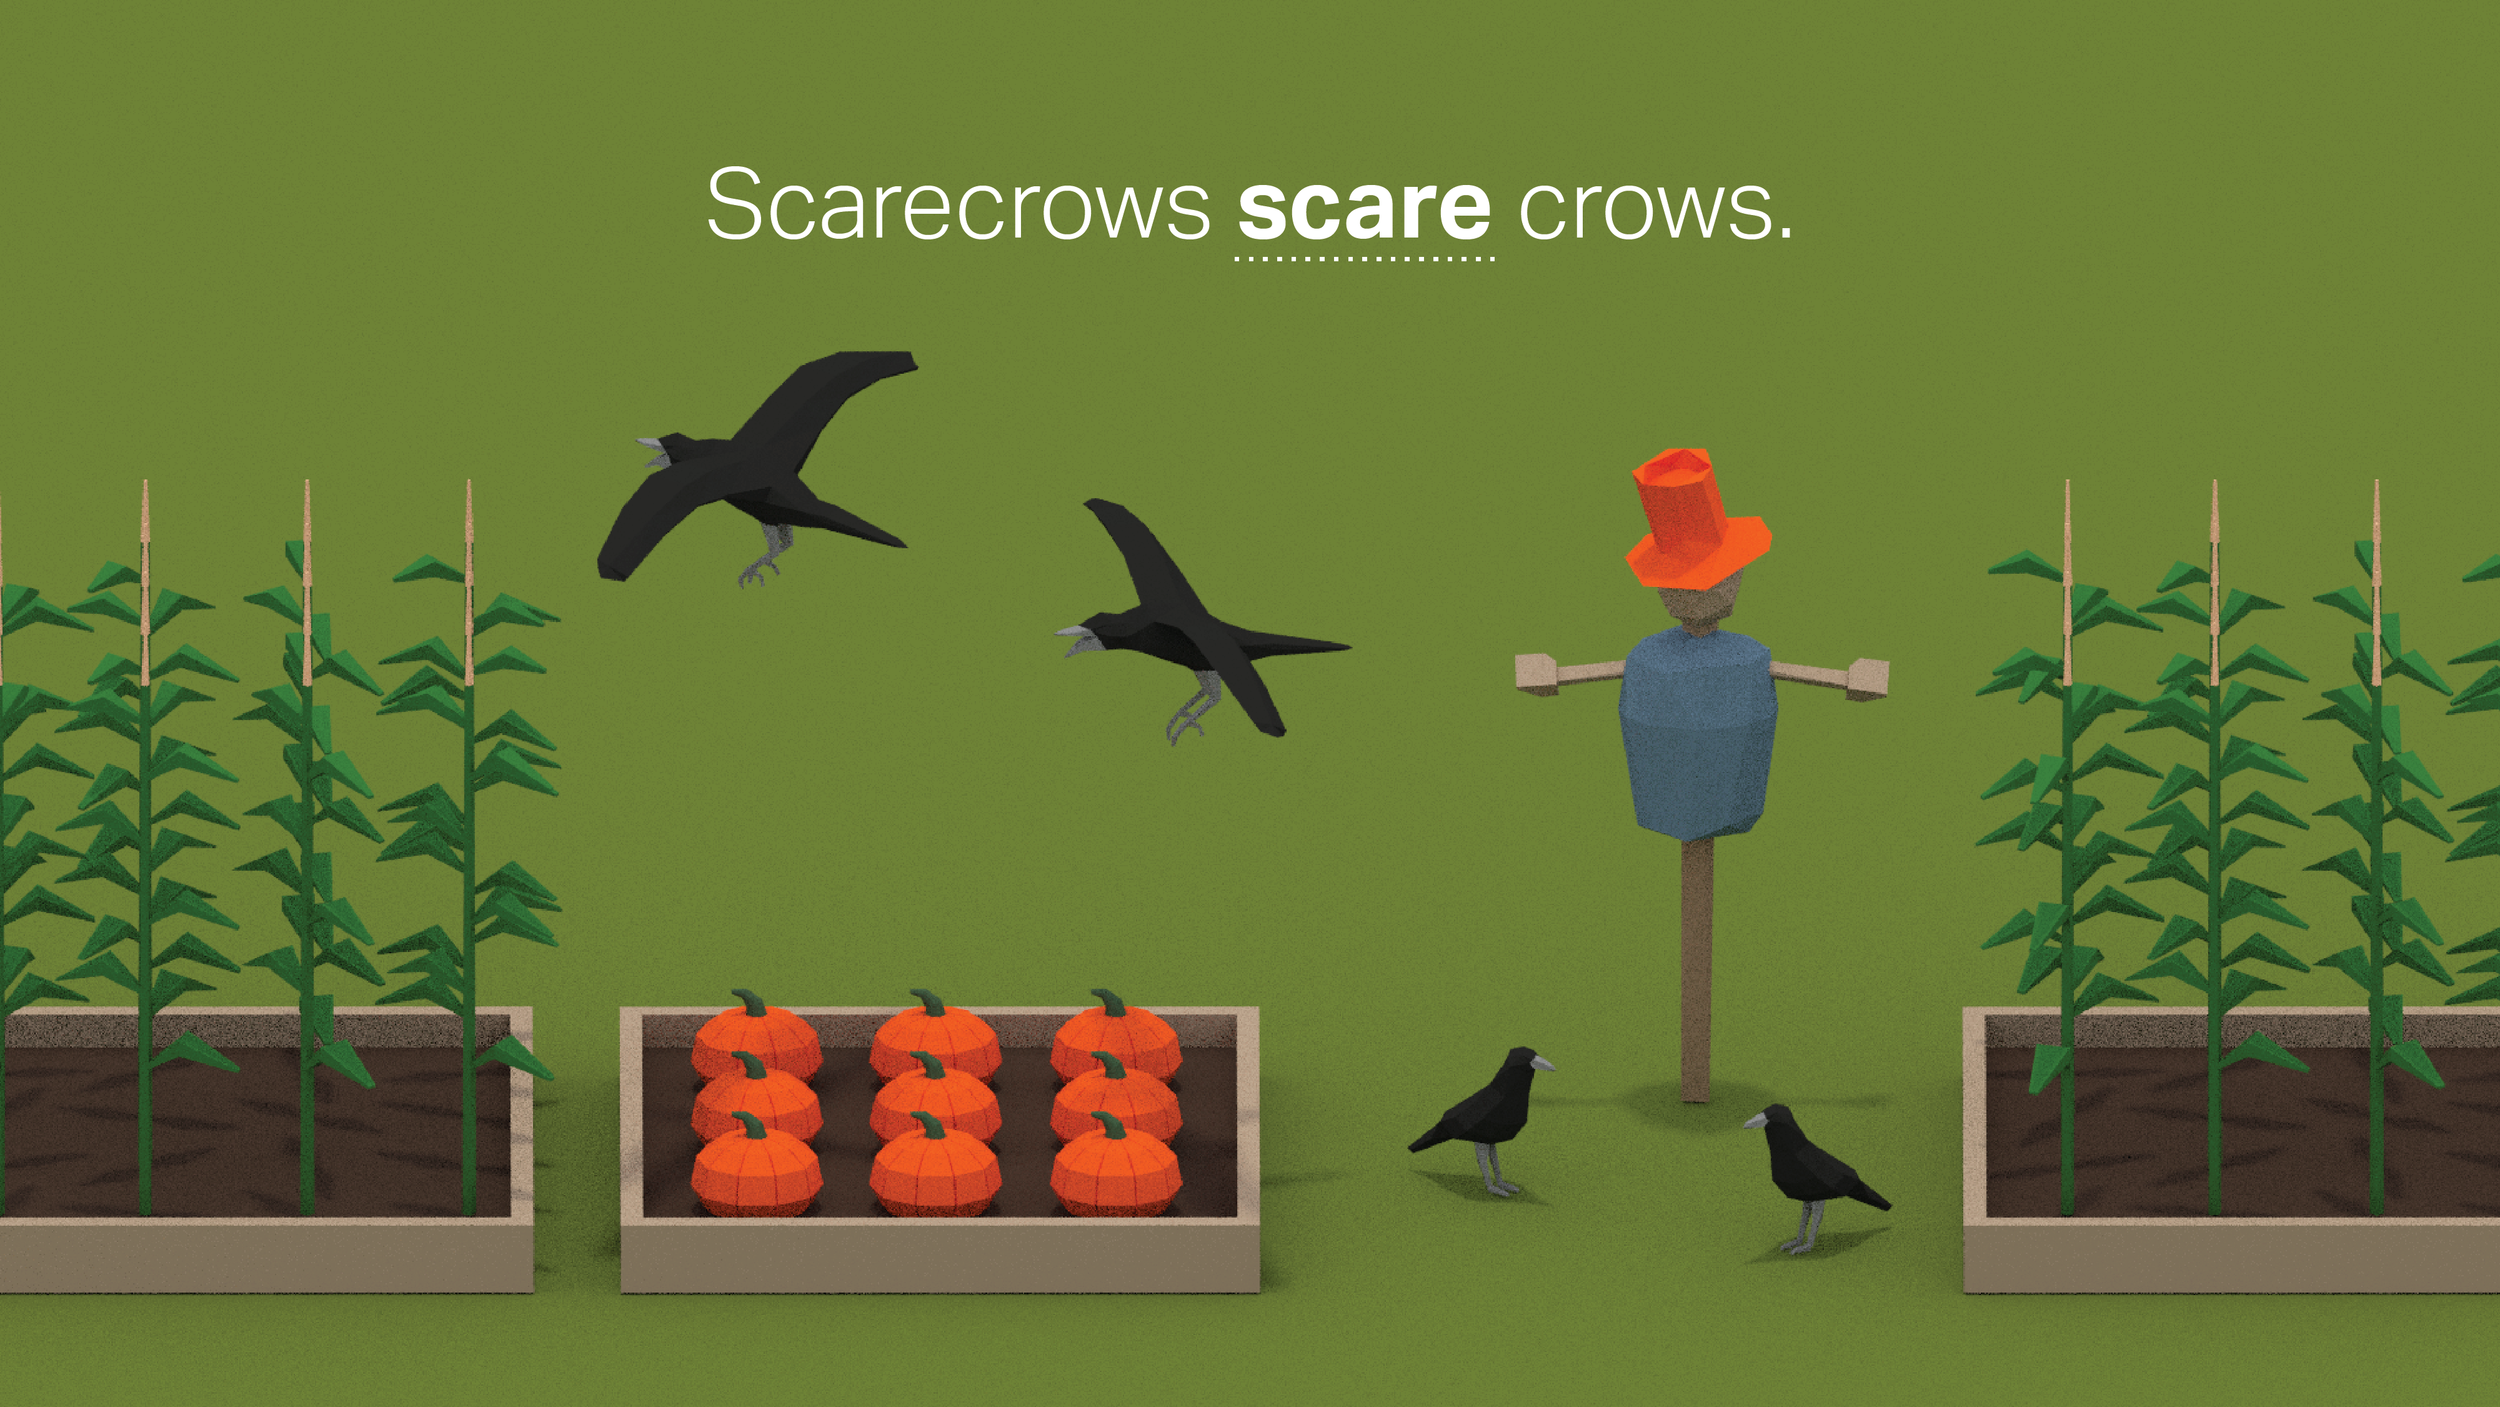 Moatboat-Scarecrows_Scare_Crows.png